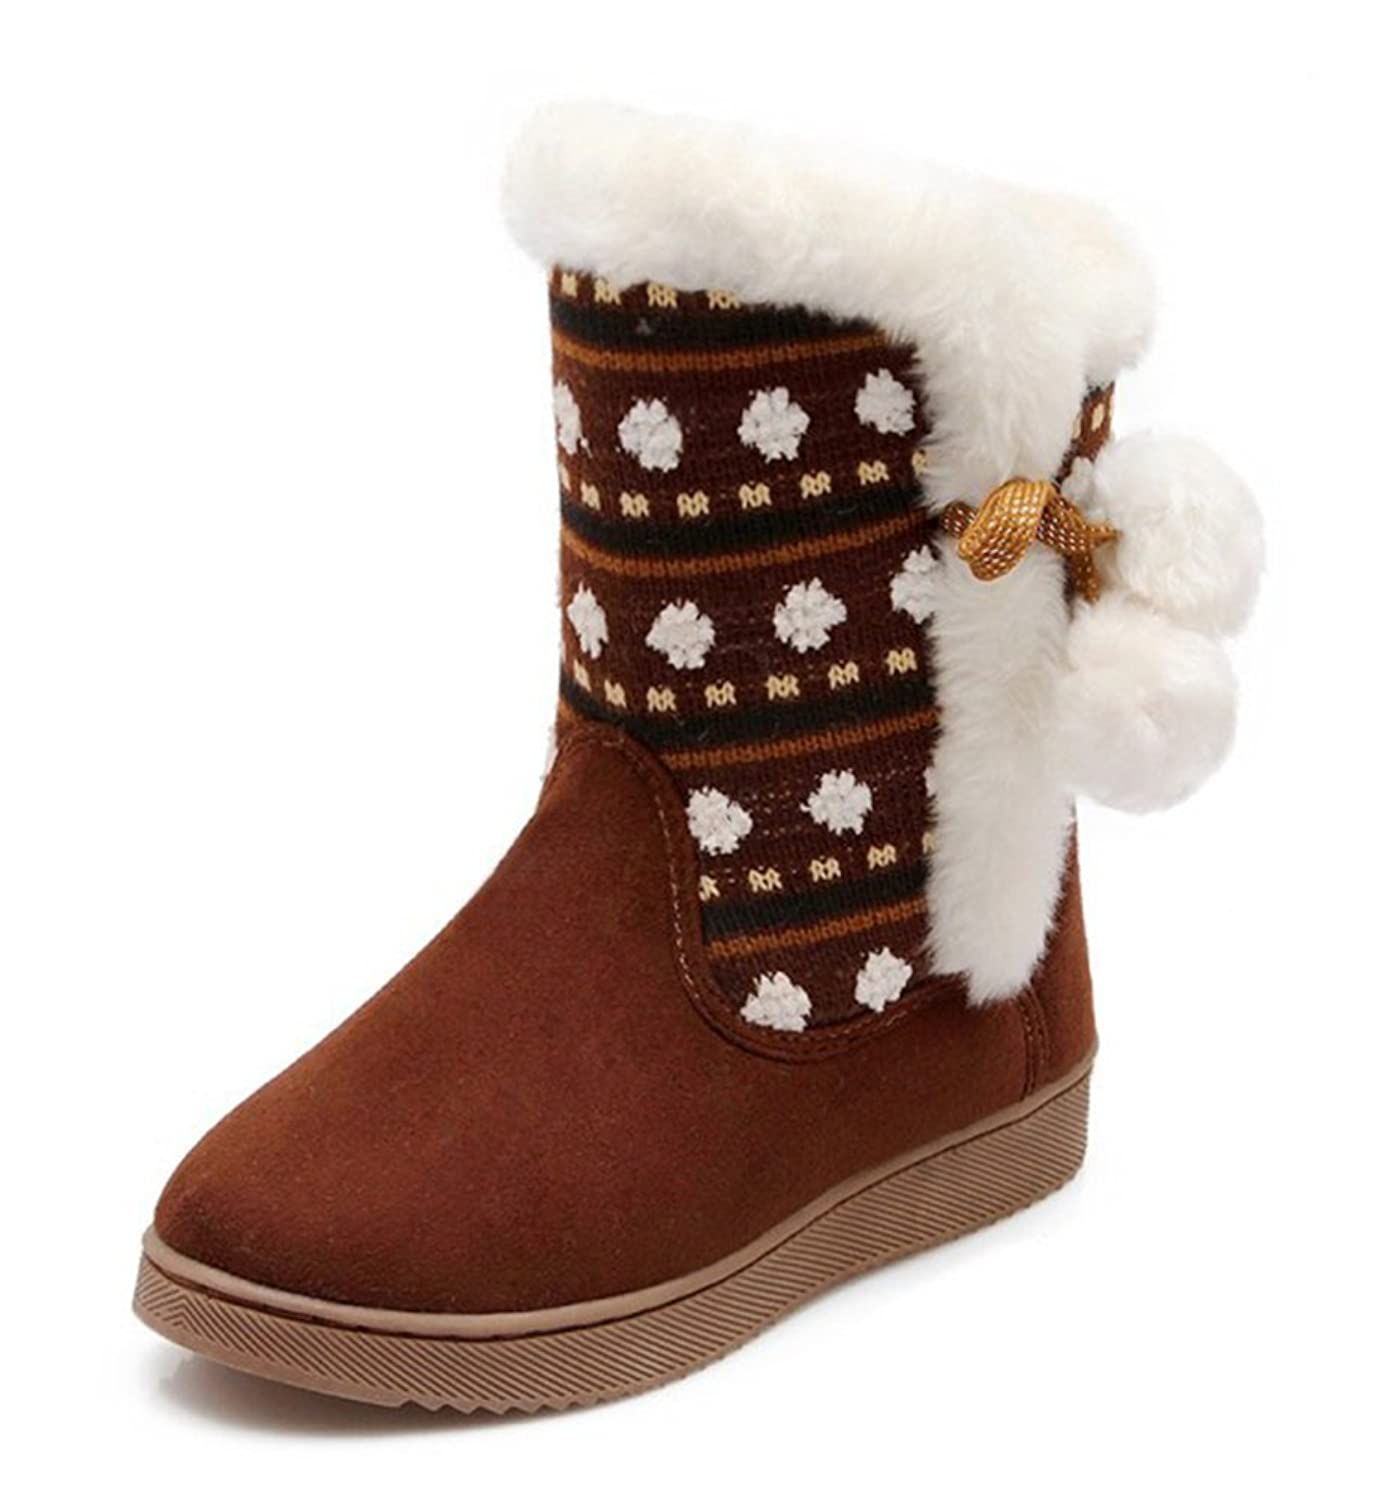 Aisun Women's Warm Cute Round Toe High Tops Lace Up Flats Ankle Snow Boots Shoes